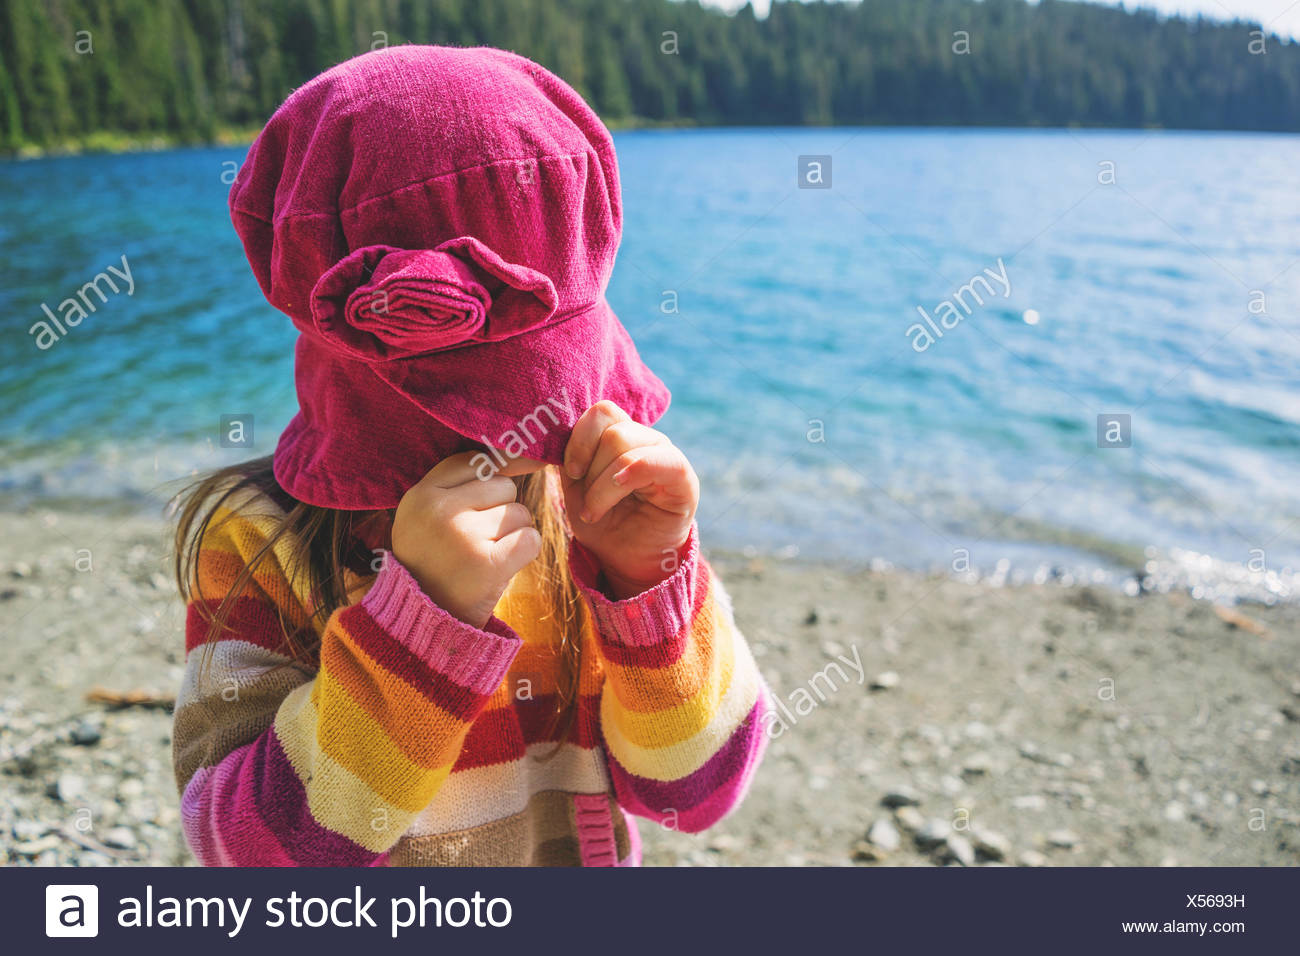 Girl pulling her hat down over her face - Stock Image